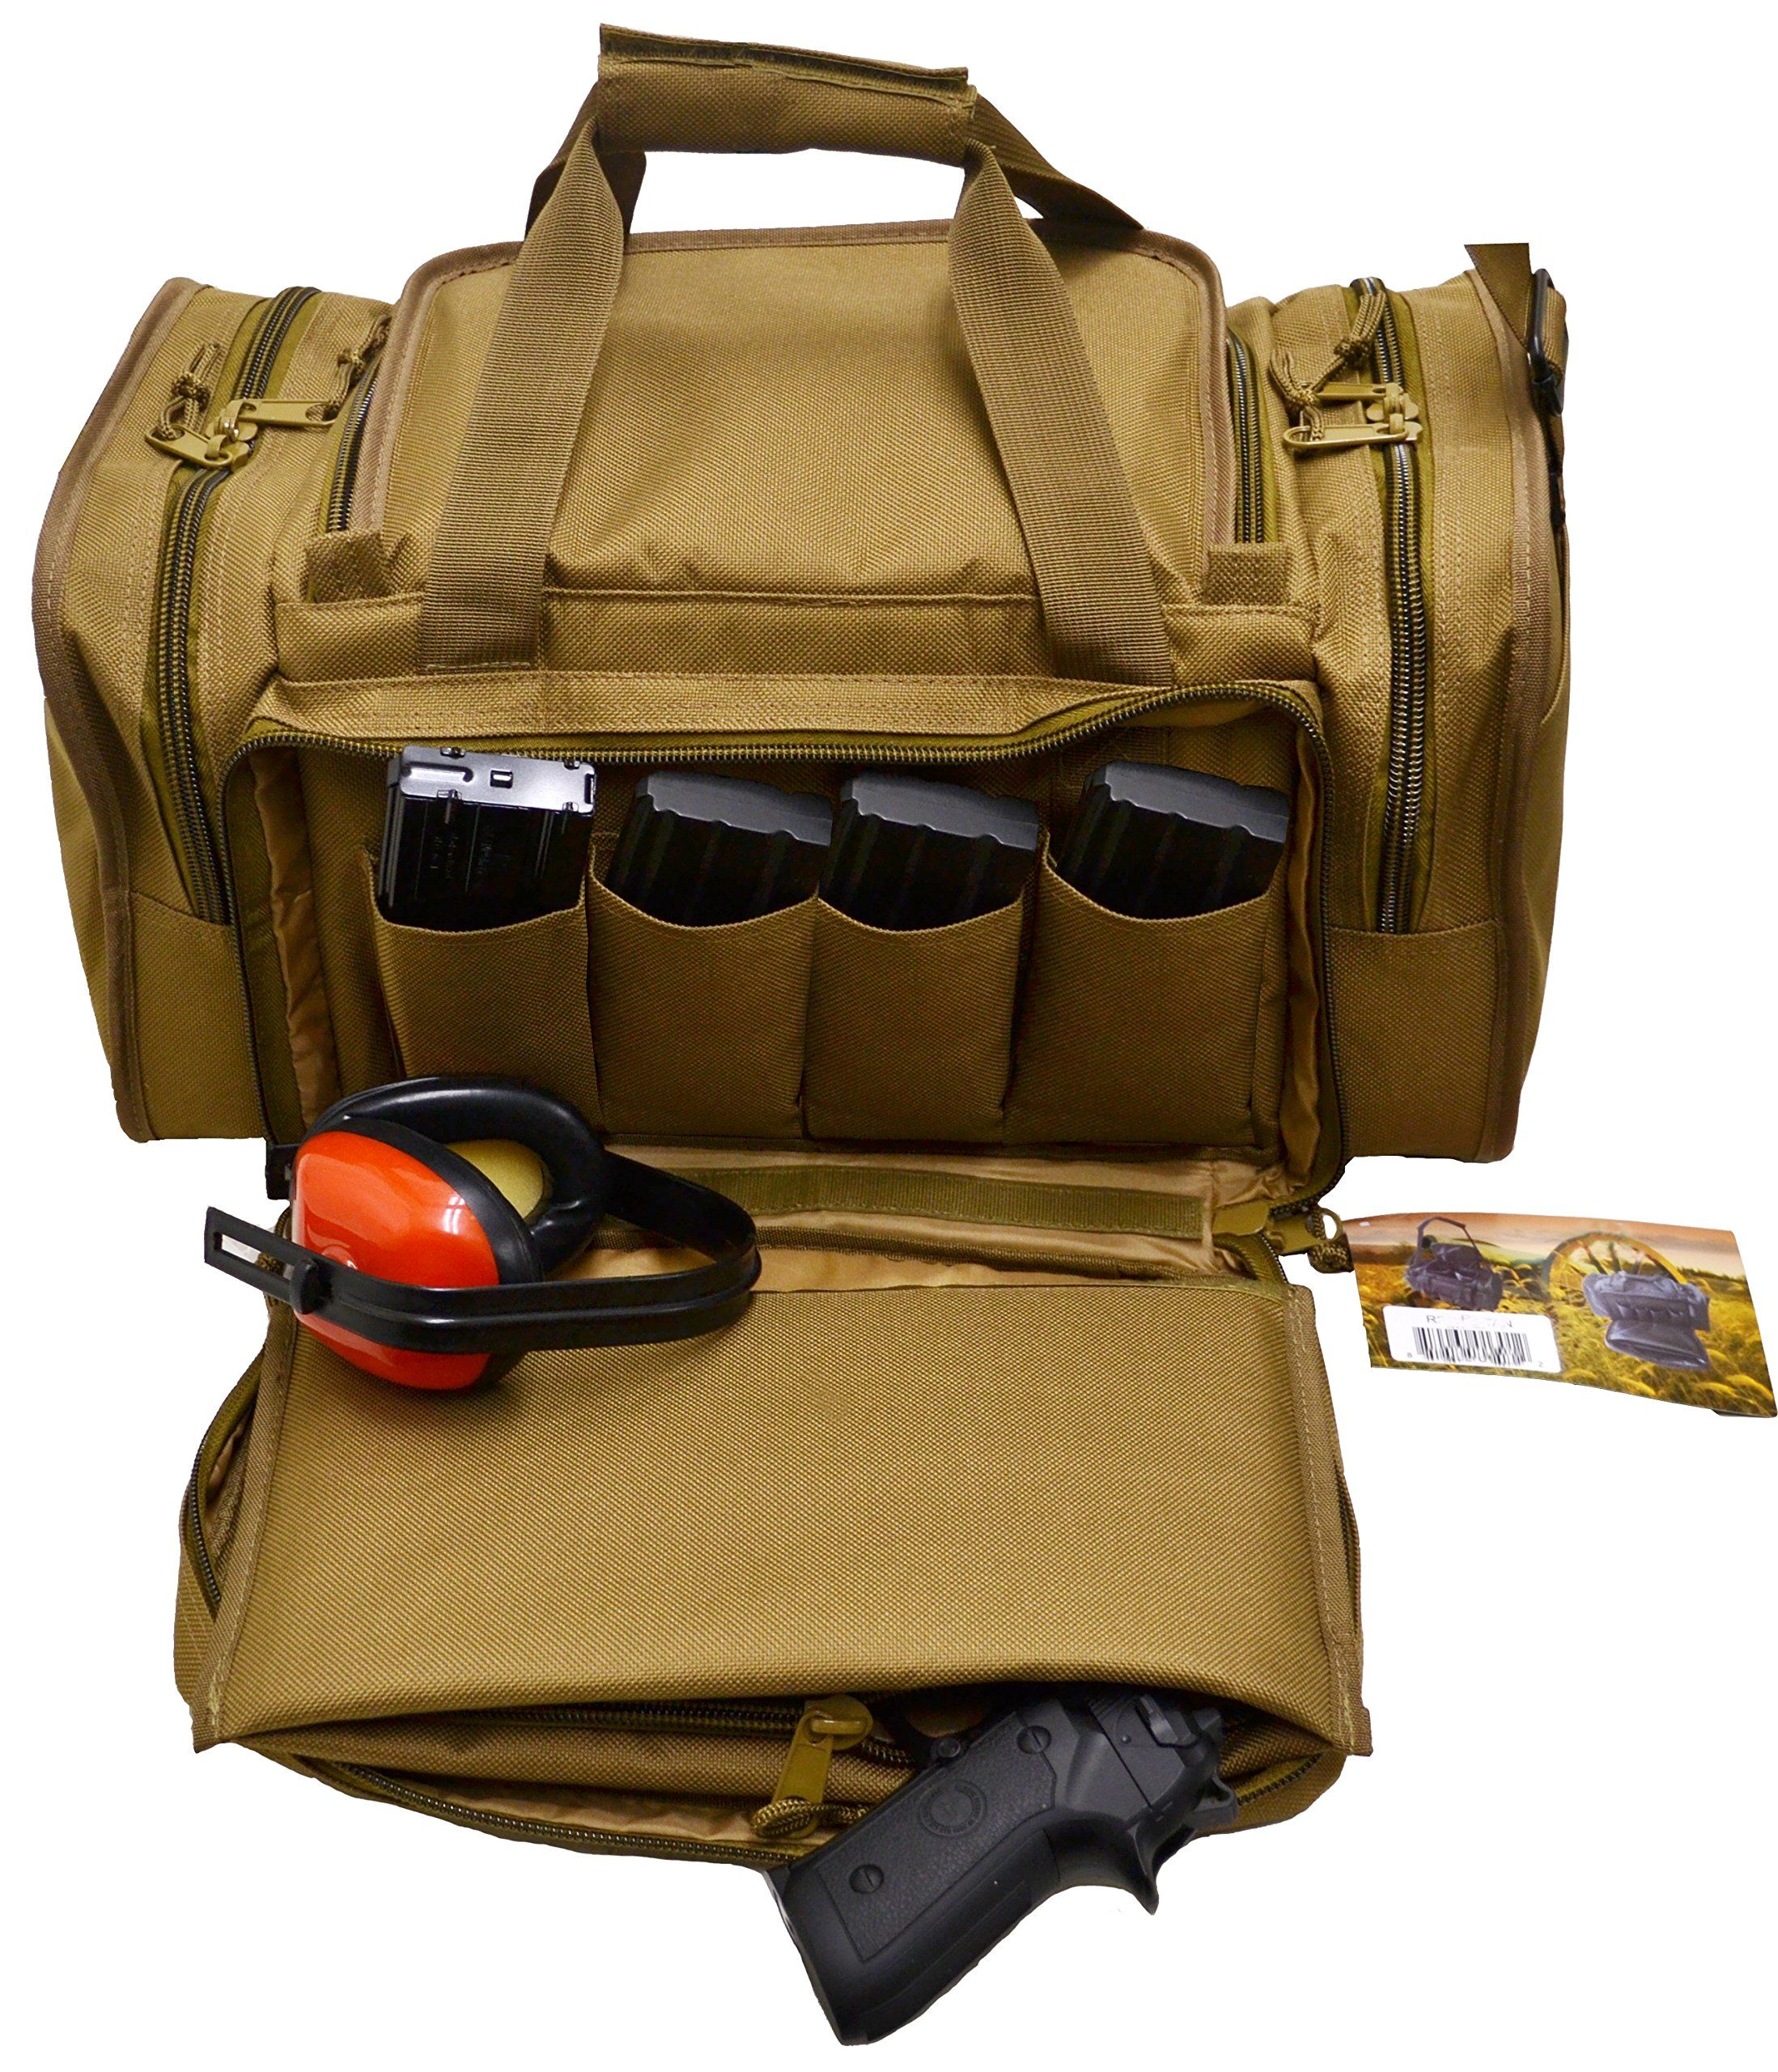 Explorer Deluxe Tactical Shooting Ammo Accessory Range Gear Padded Carry Bag 13 Pistol Hand Gun Case + Heavy Duty Shoulder Pad by Explorer